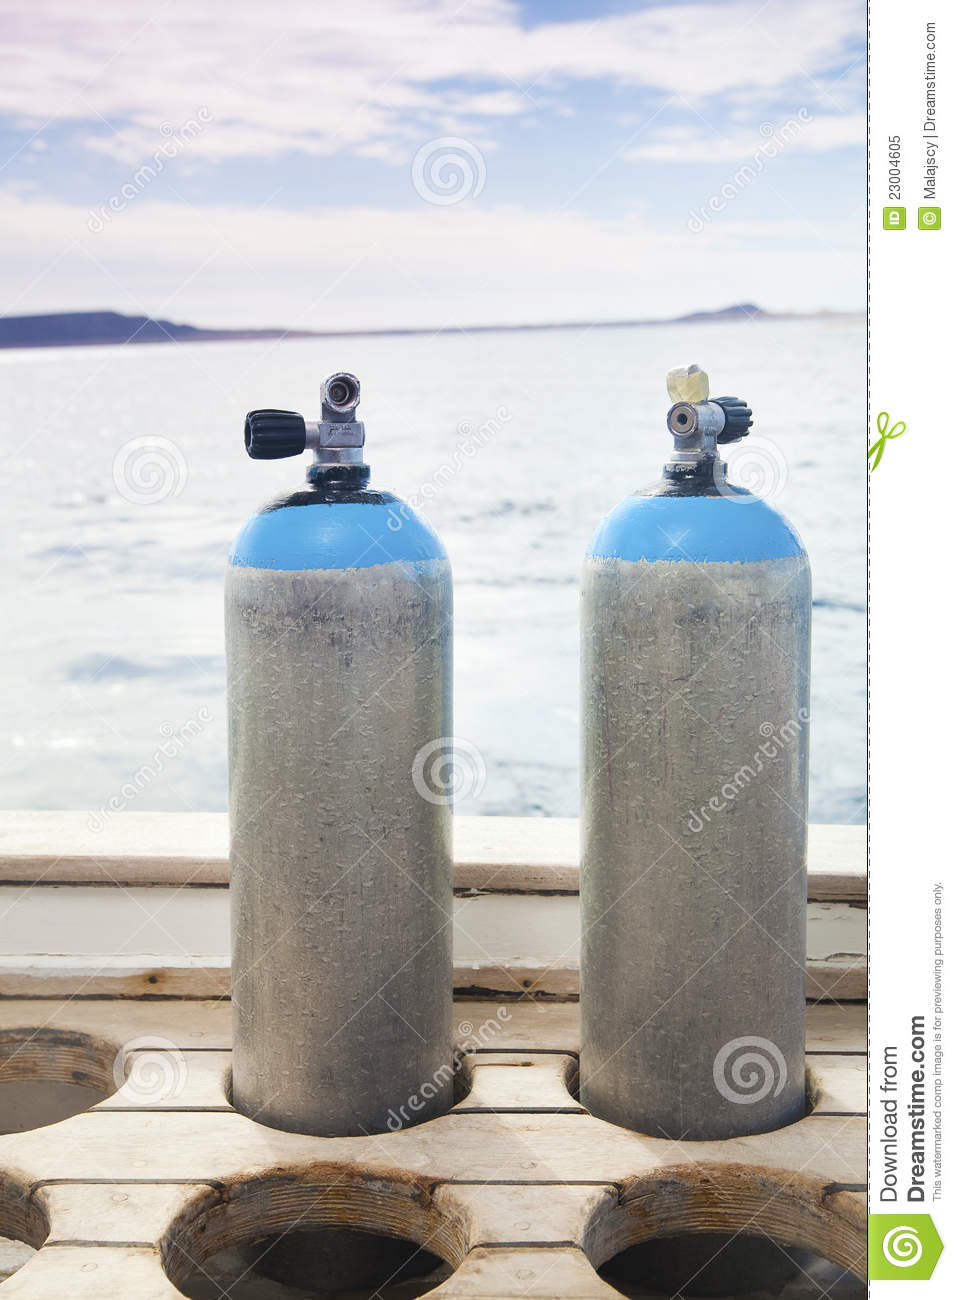 Scuba Diving Tanks Royalty Free Stock Photo   Image  23004605